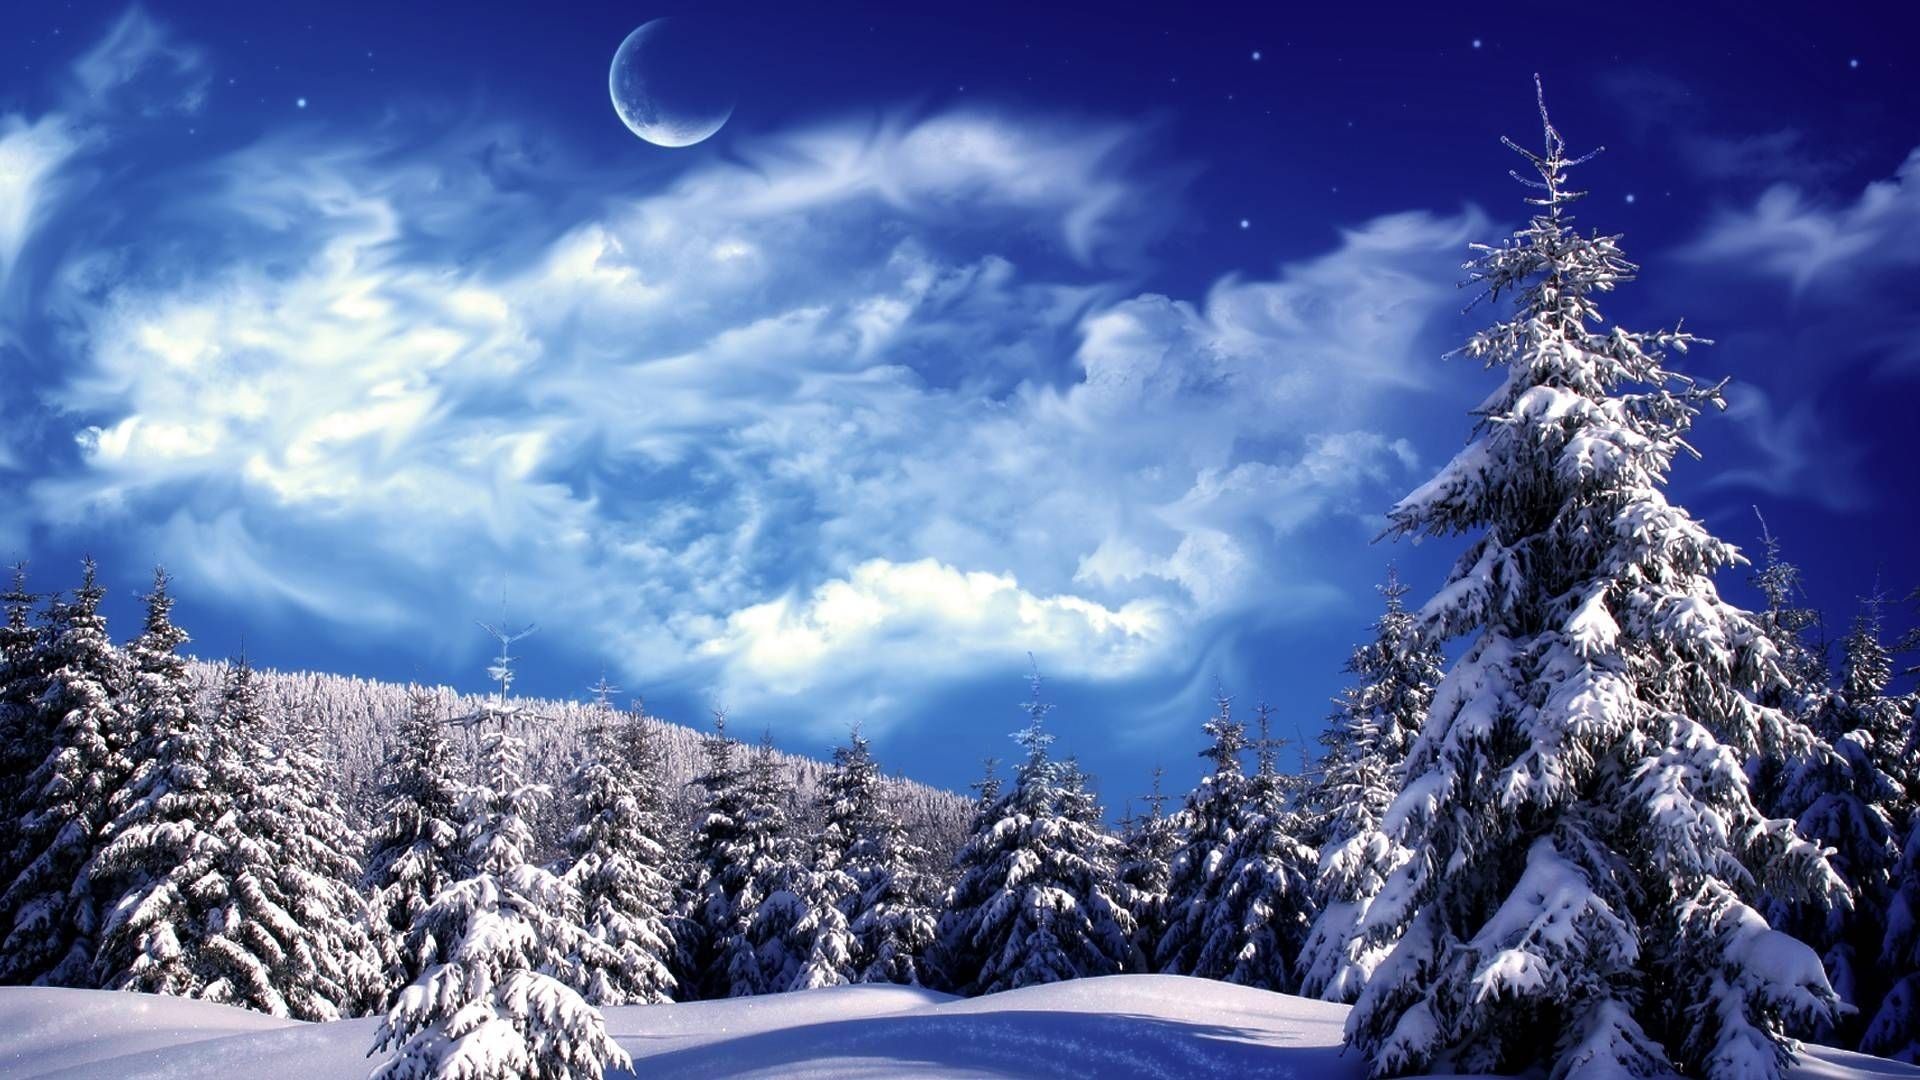 10 New Winter Wonderland Hd Wallpaper FULL HD 1920×1080 For PC Desktop